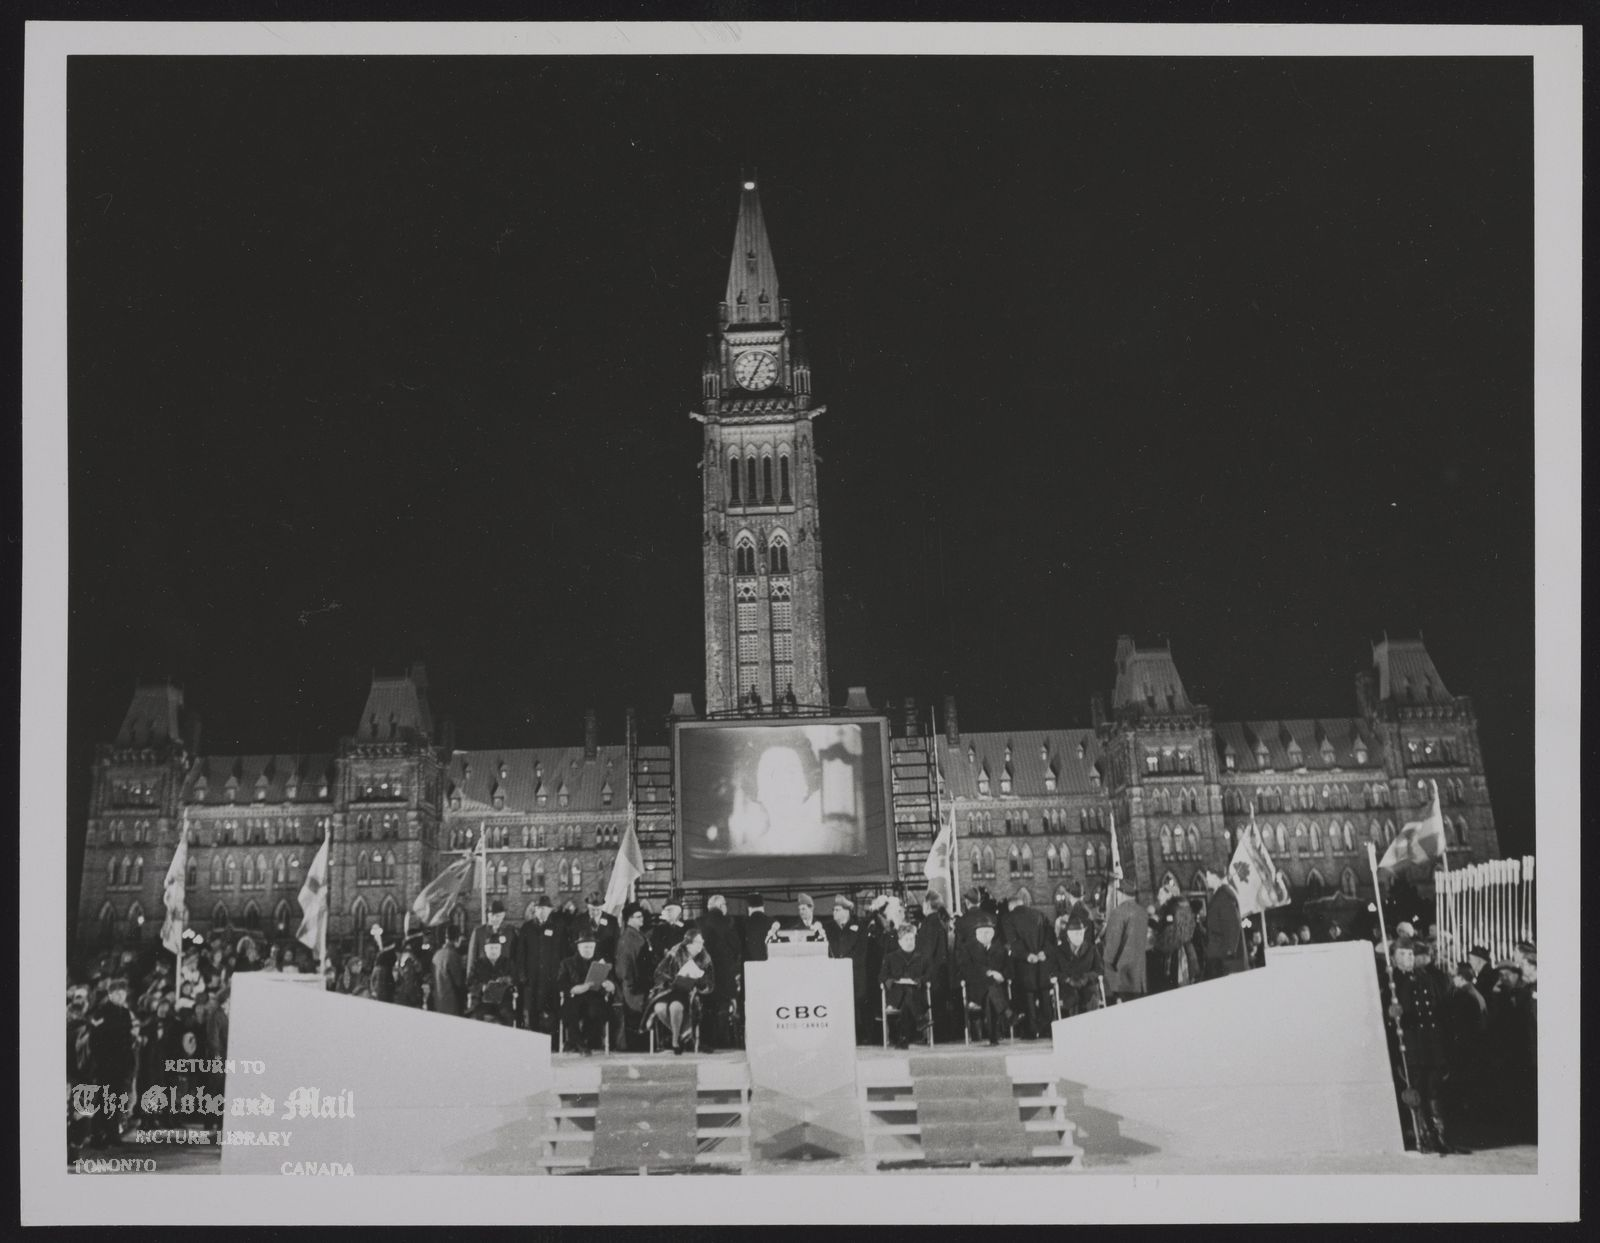 The notes transcribed from the back of this photograph are as follows: CANADA dominion Centennial Centennial ceremony on Parliament Hill on New Year's Eve